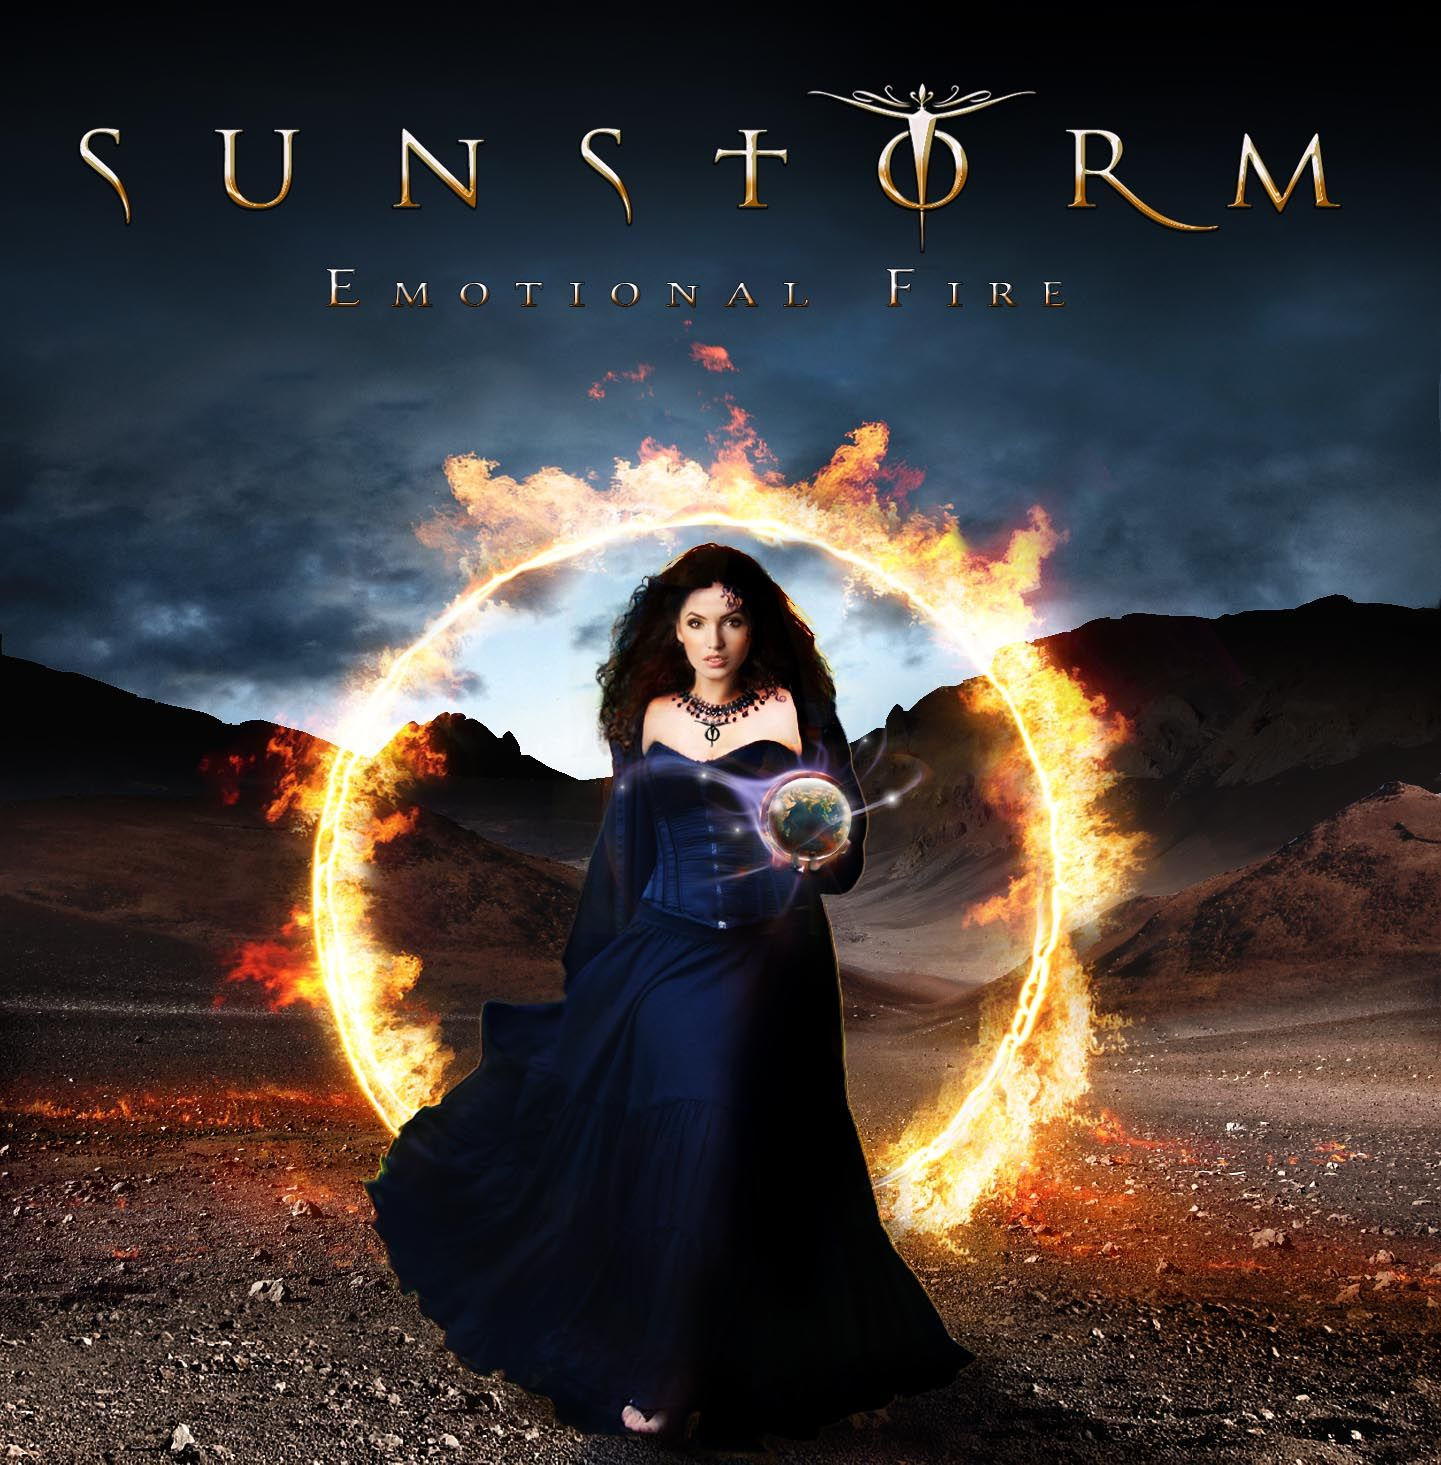 sunstorm emotional fire